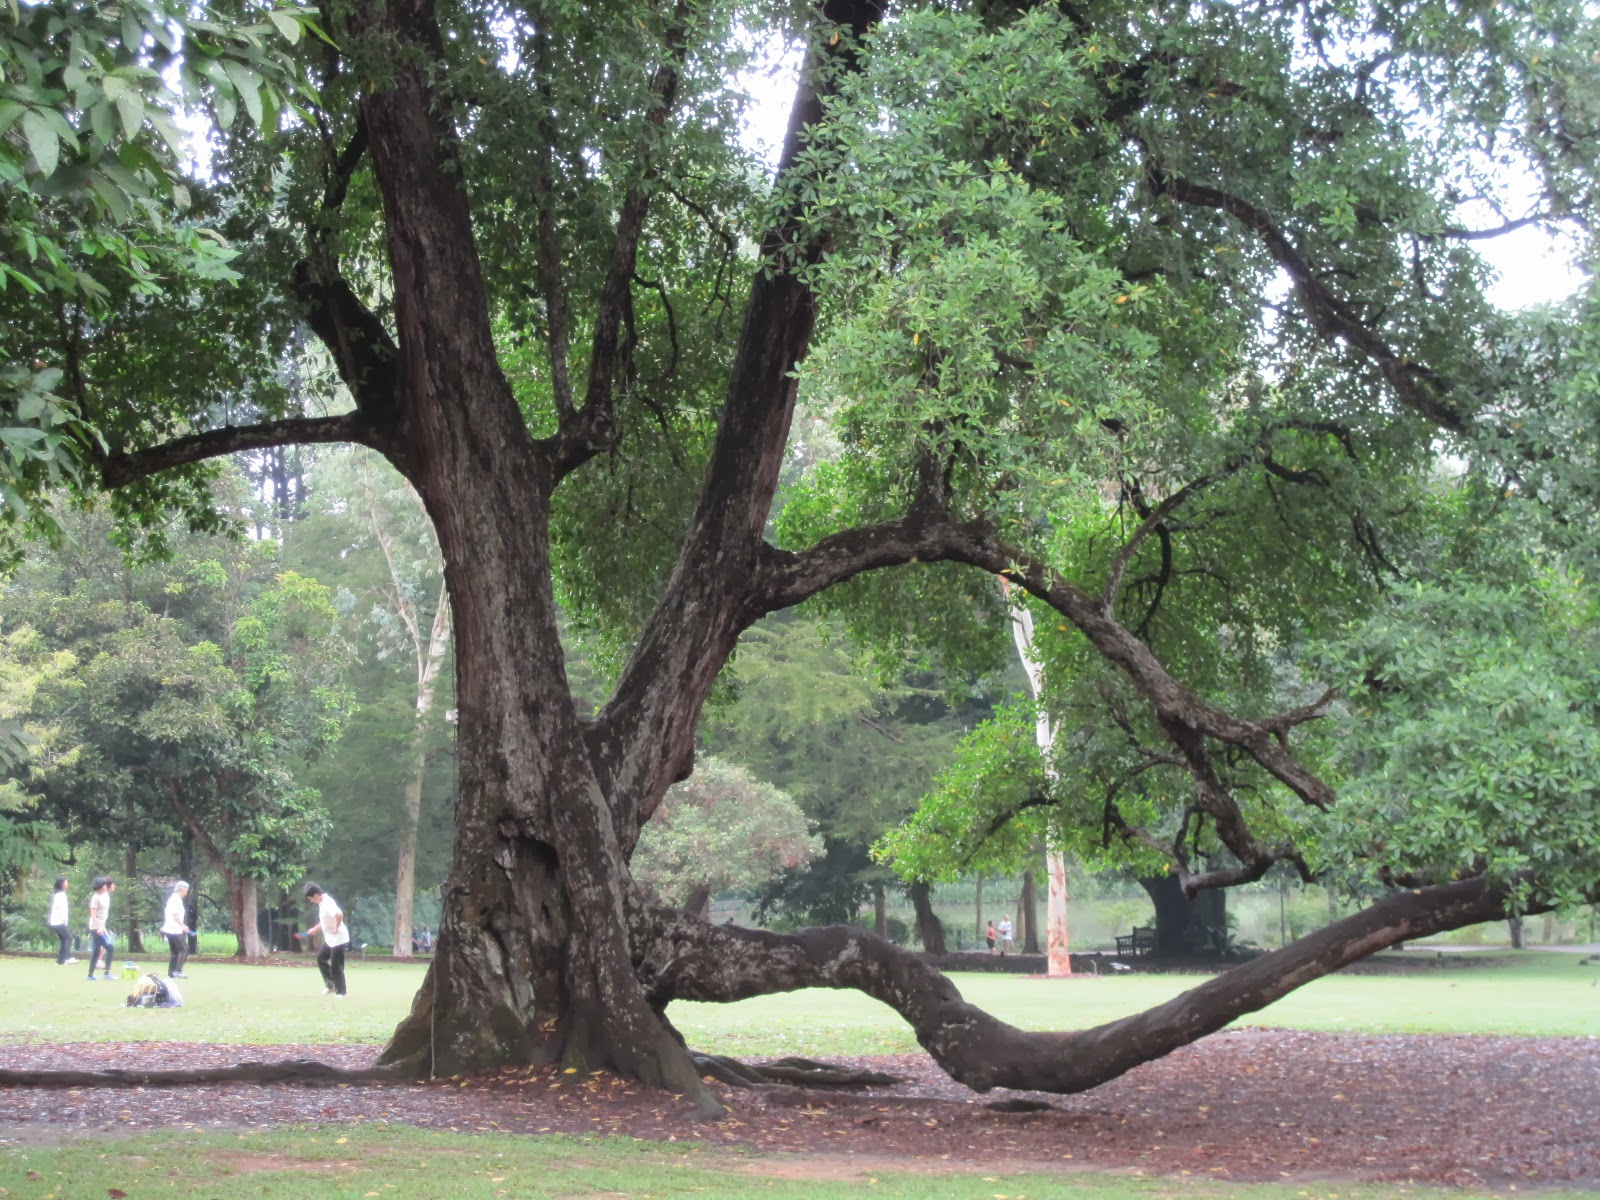 This Tembusu tree is located in Singapore Botanic Gardens, it is best known as The 5-dollars Note Tree.  It is believed that the tree was there well before the Gardens were laid out in1859.